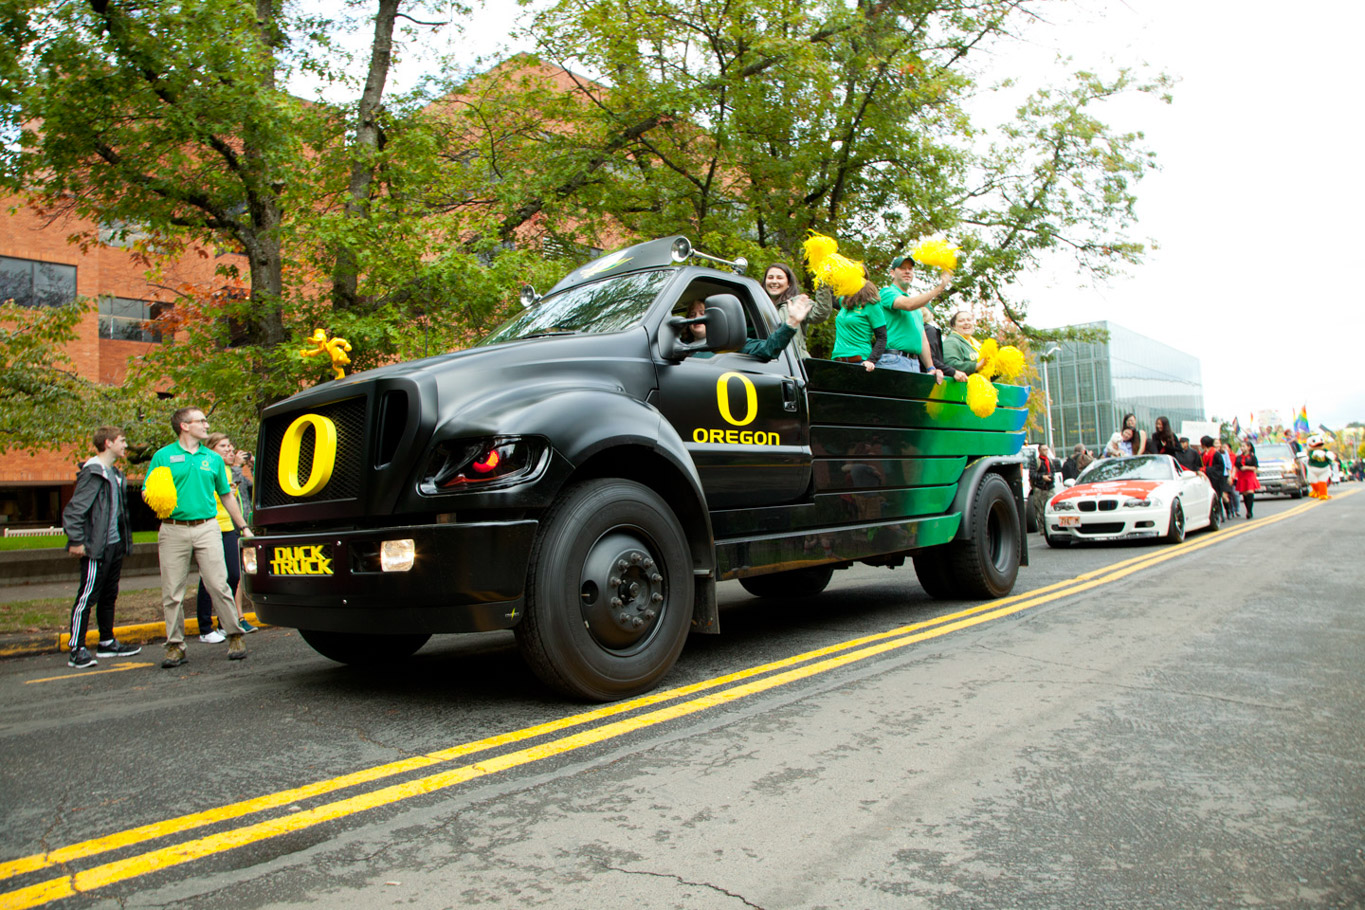 The duck truck moves during the homecoming parade